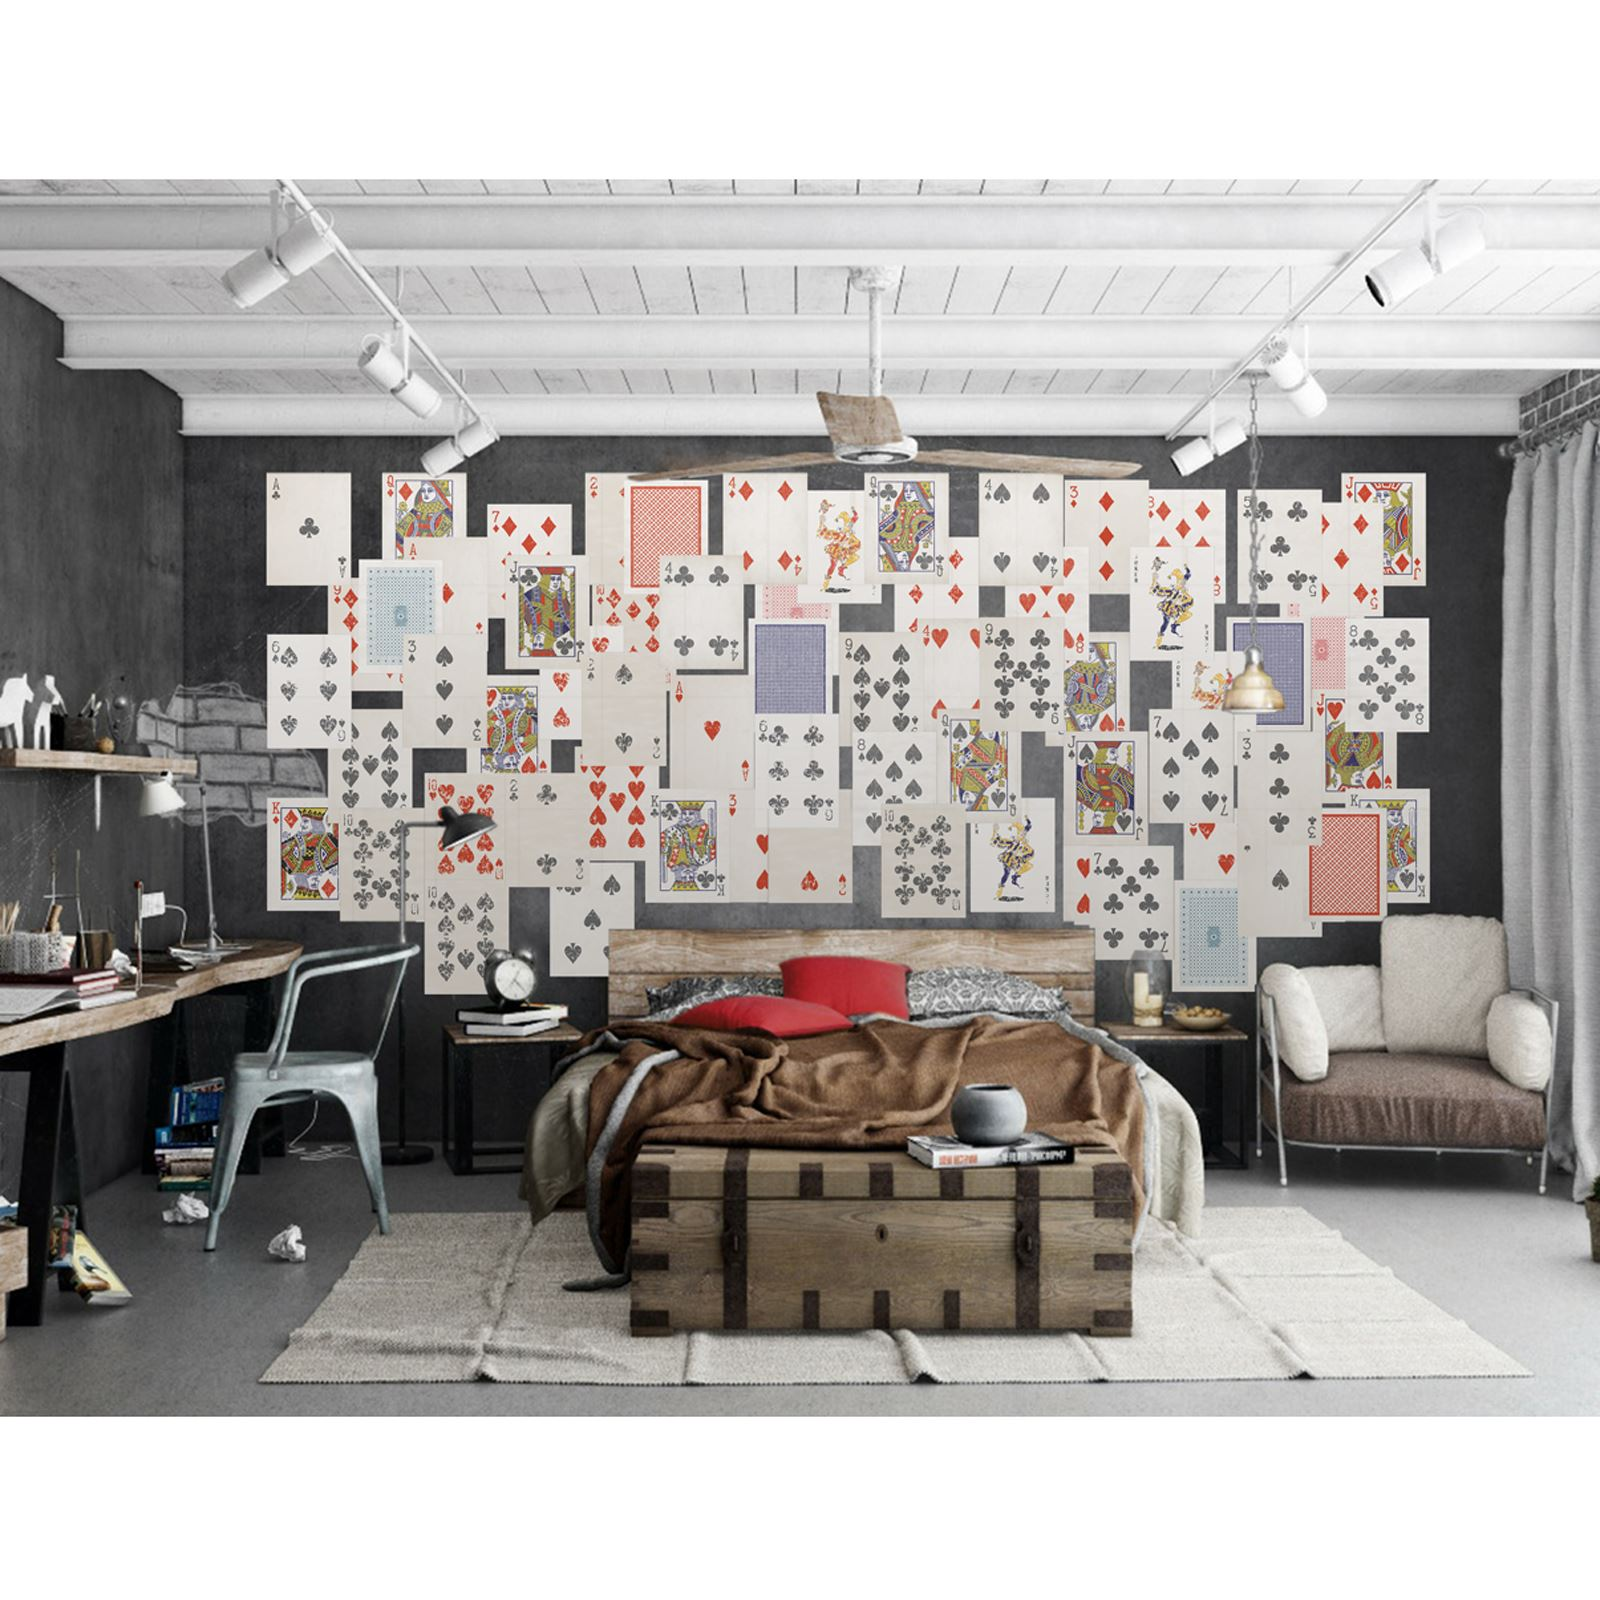 CREATIVE COLLAGE PLAYING CARDS DESIGNER WALL MURAL - 64 PIECE WALLPAPER NEW